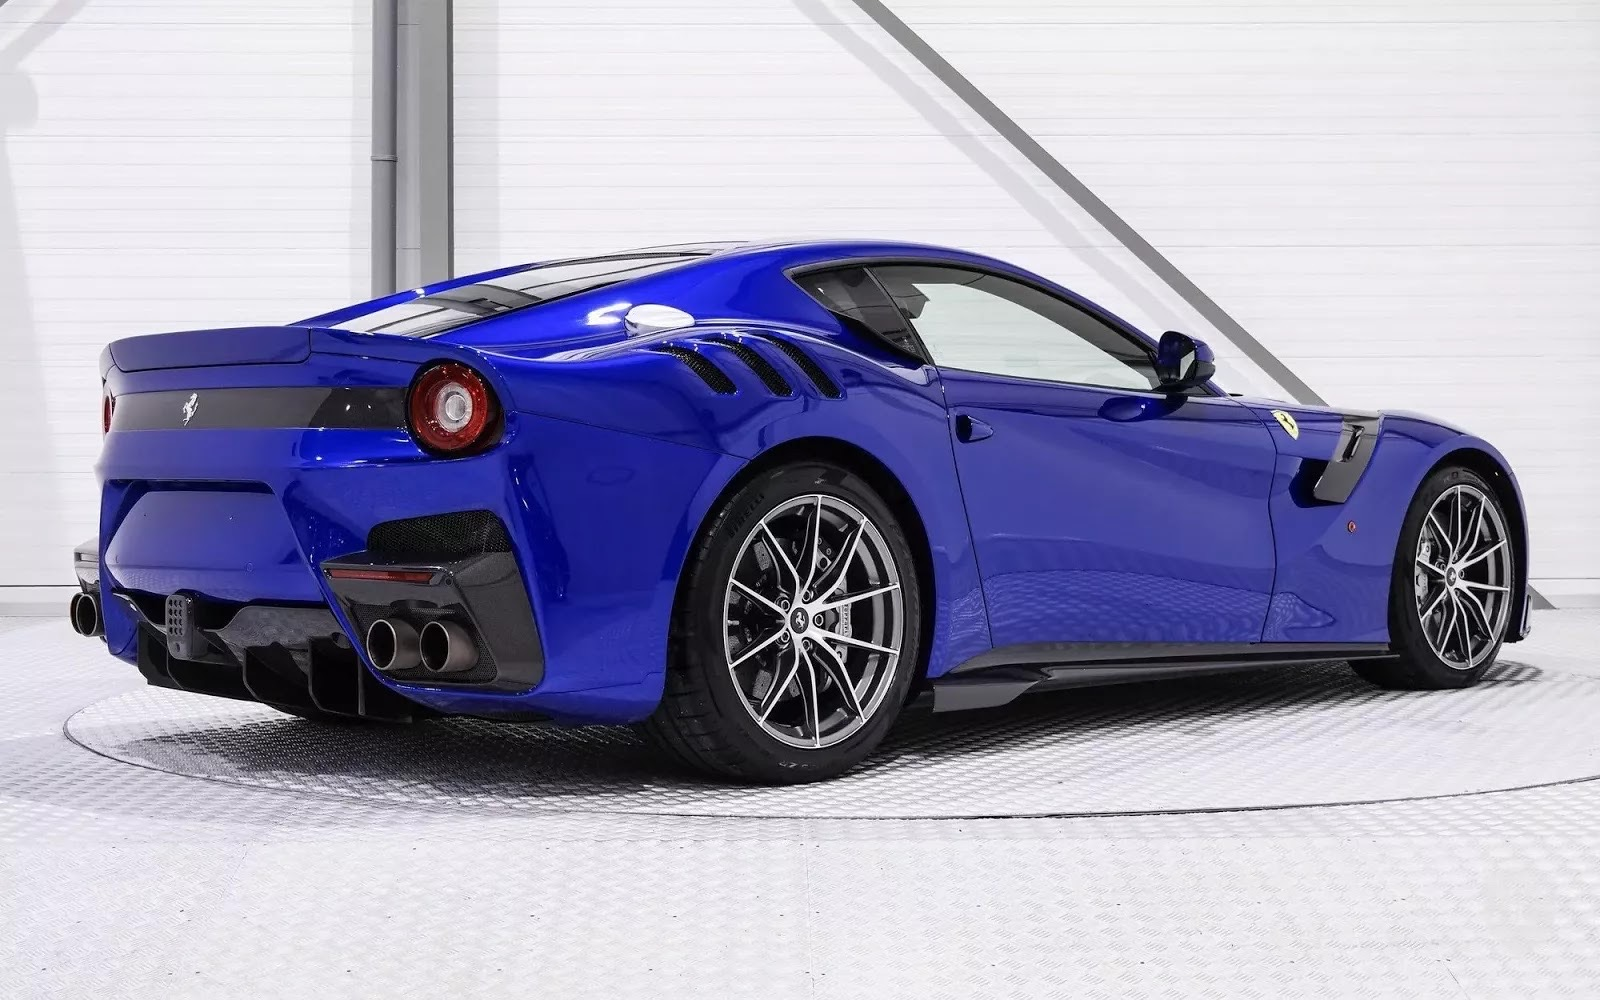 One-Off_Electric_Blue_Ferrari_F12tdf_03